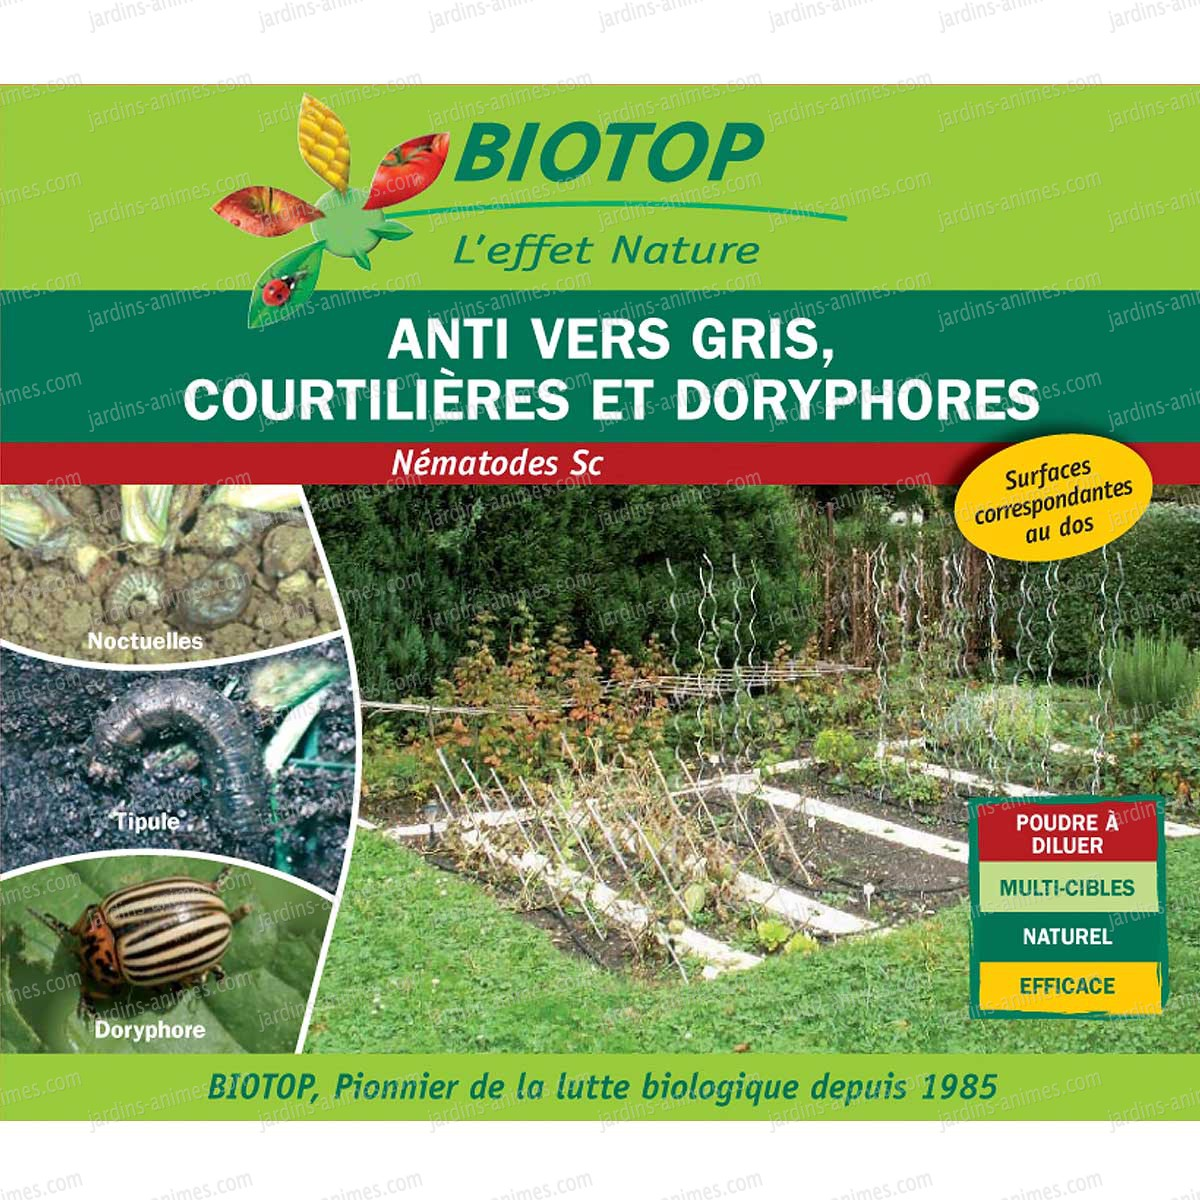 Nematodes 25millions anti vers gris courtili res tipules for Vers gris traitement